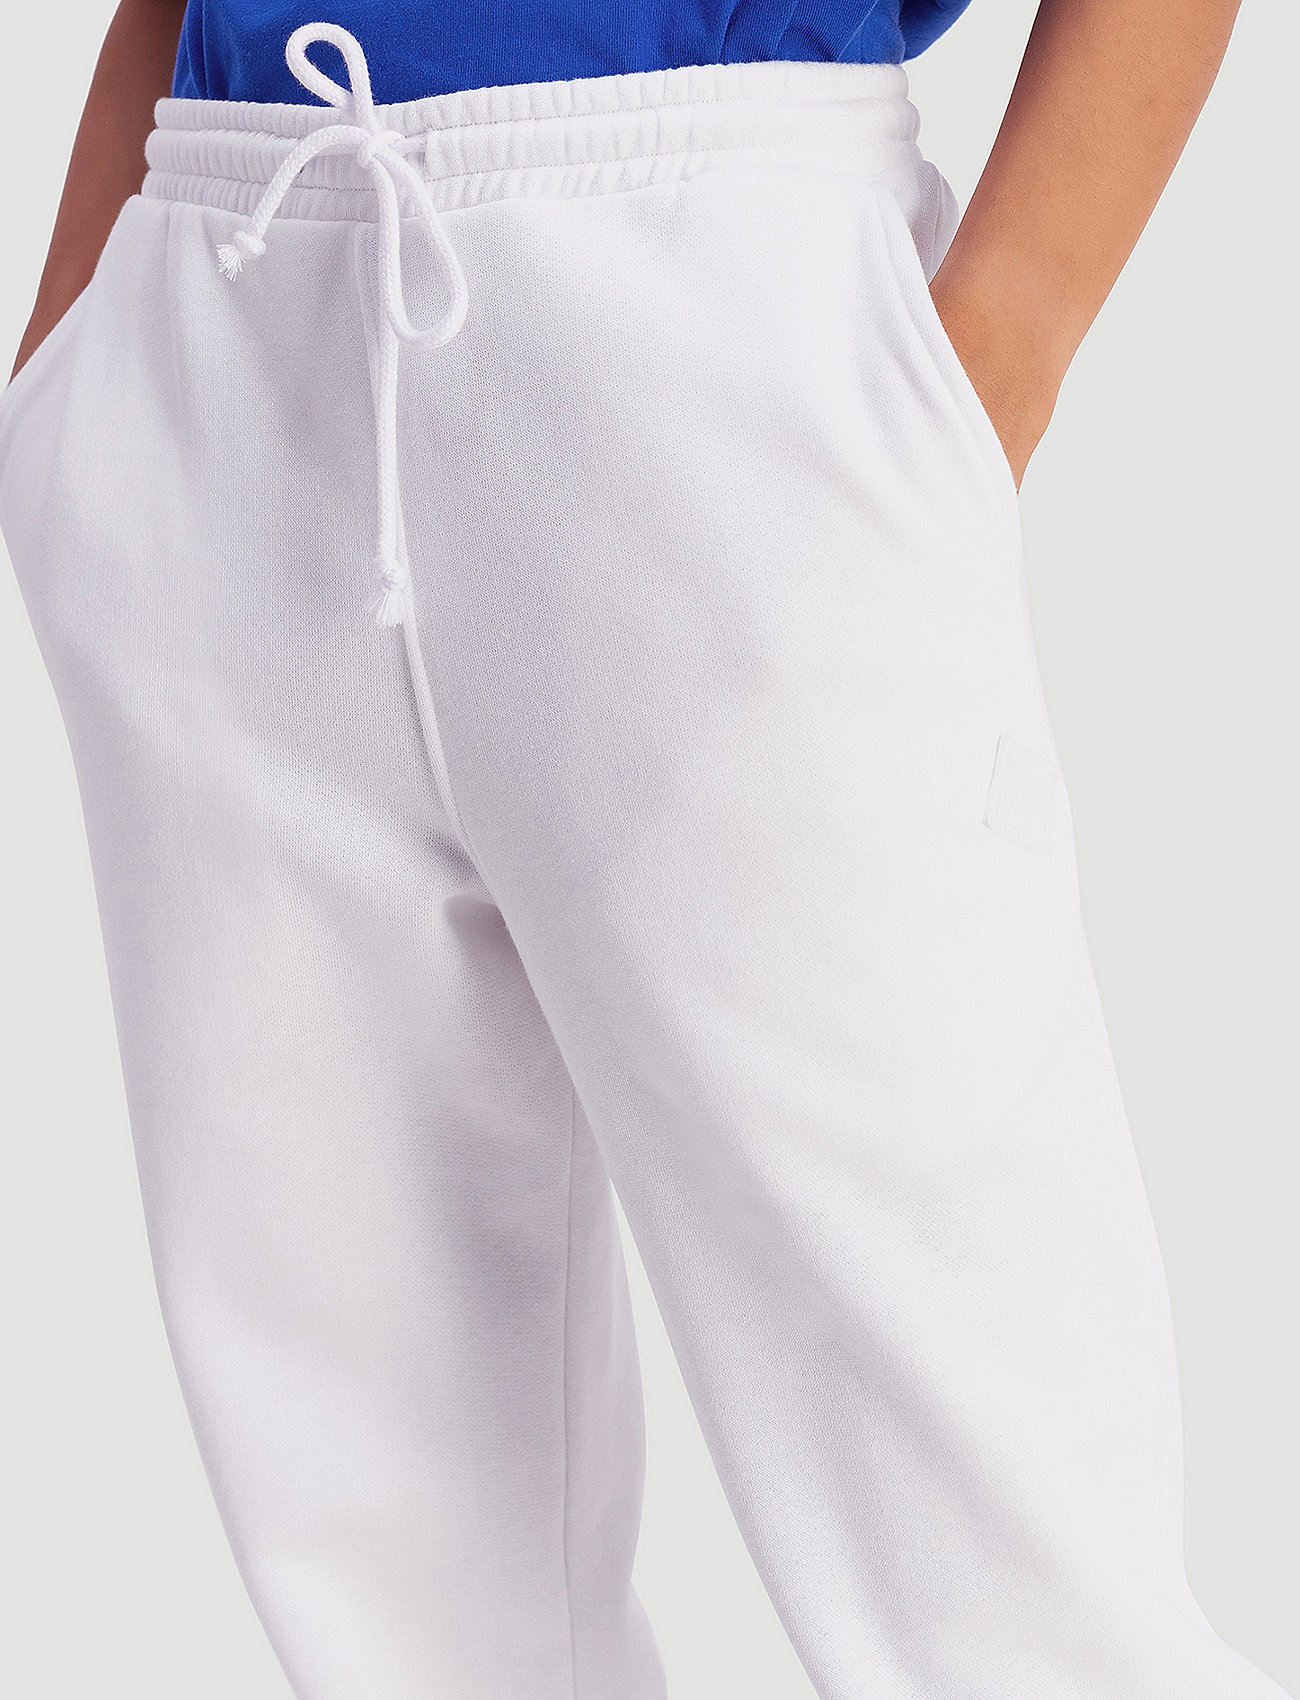 Hanger by Holzweiler - Hanger Trousers - kleidung - white - 0